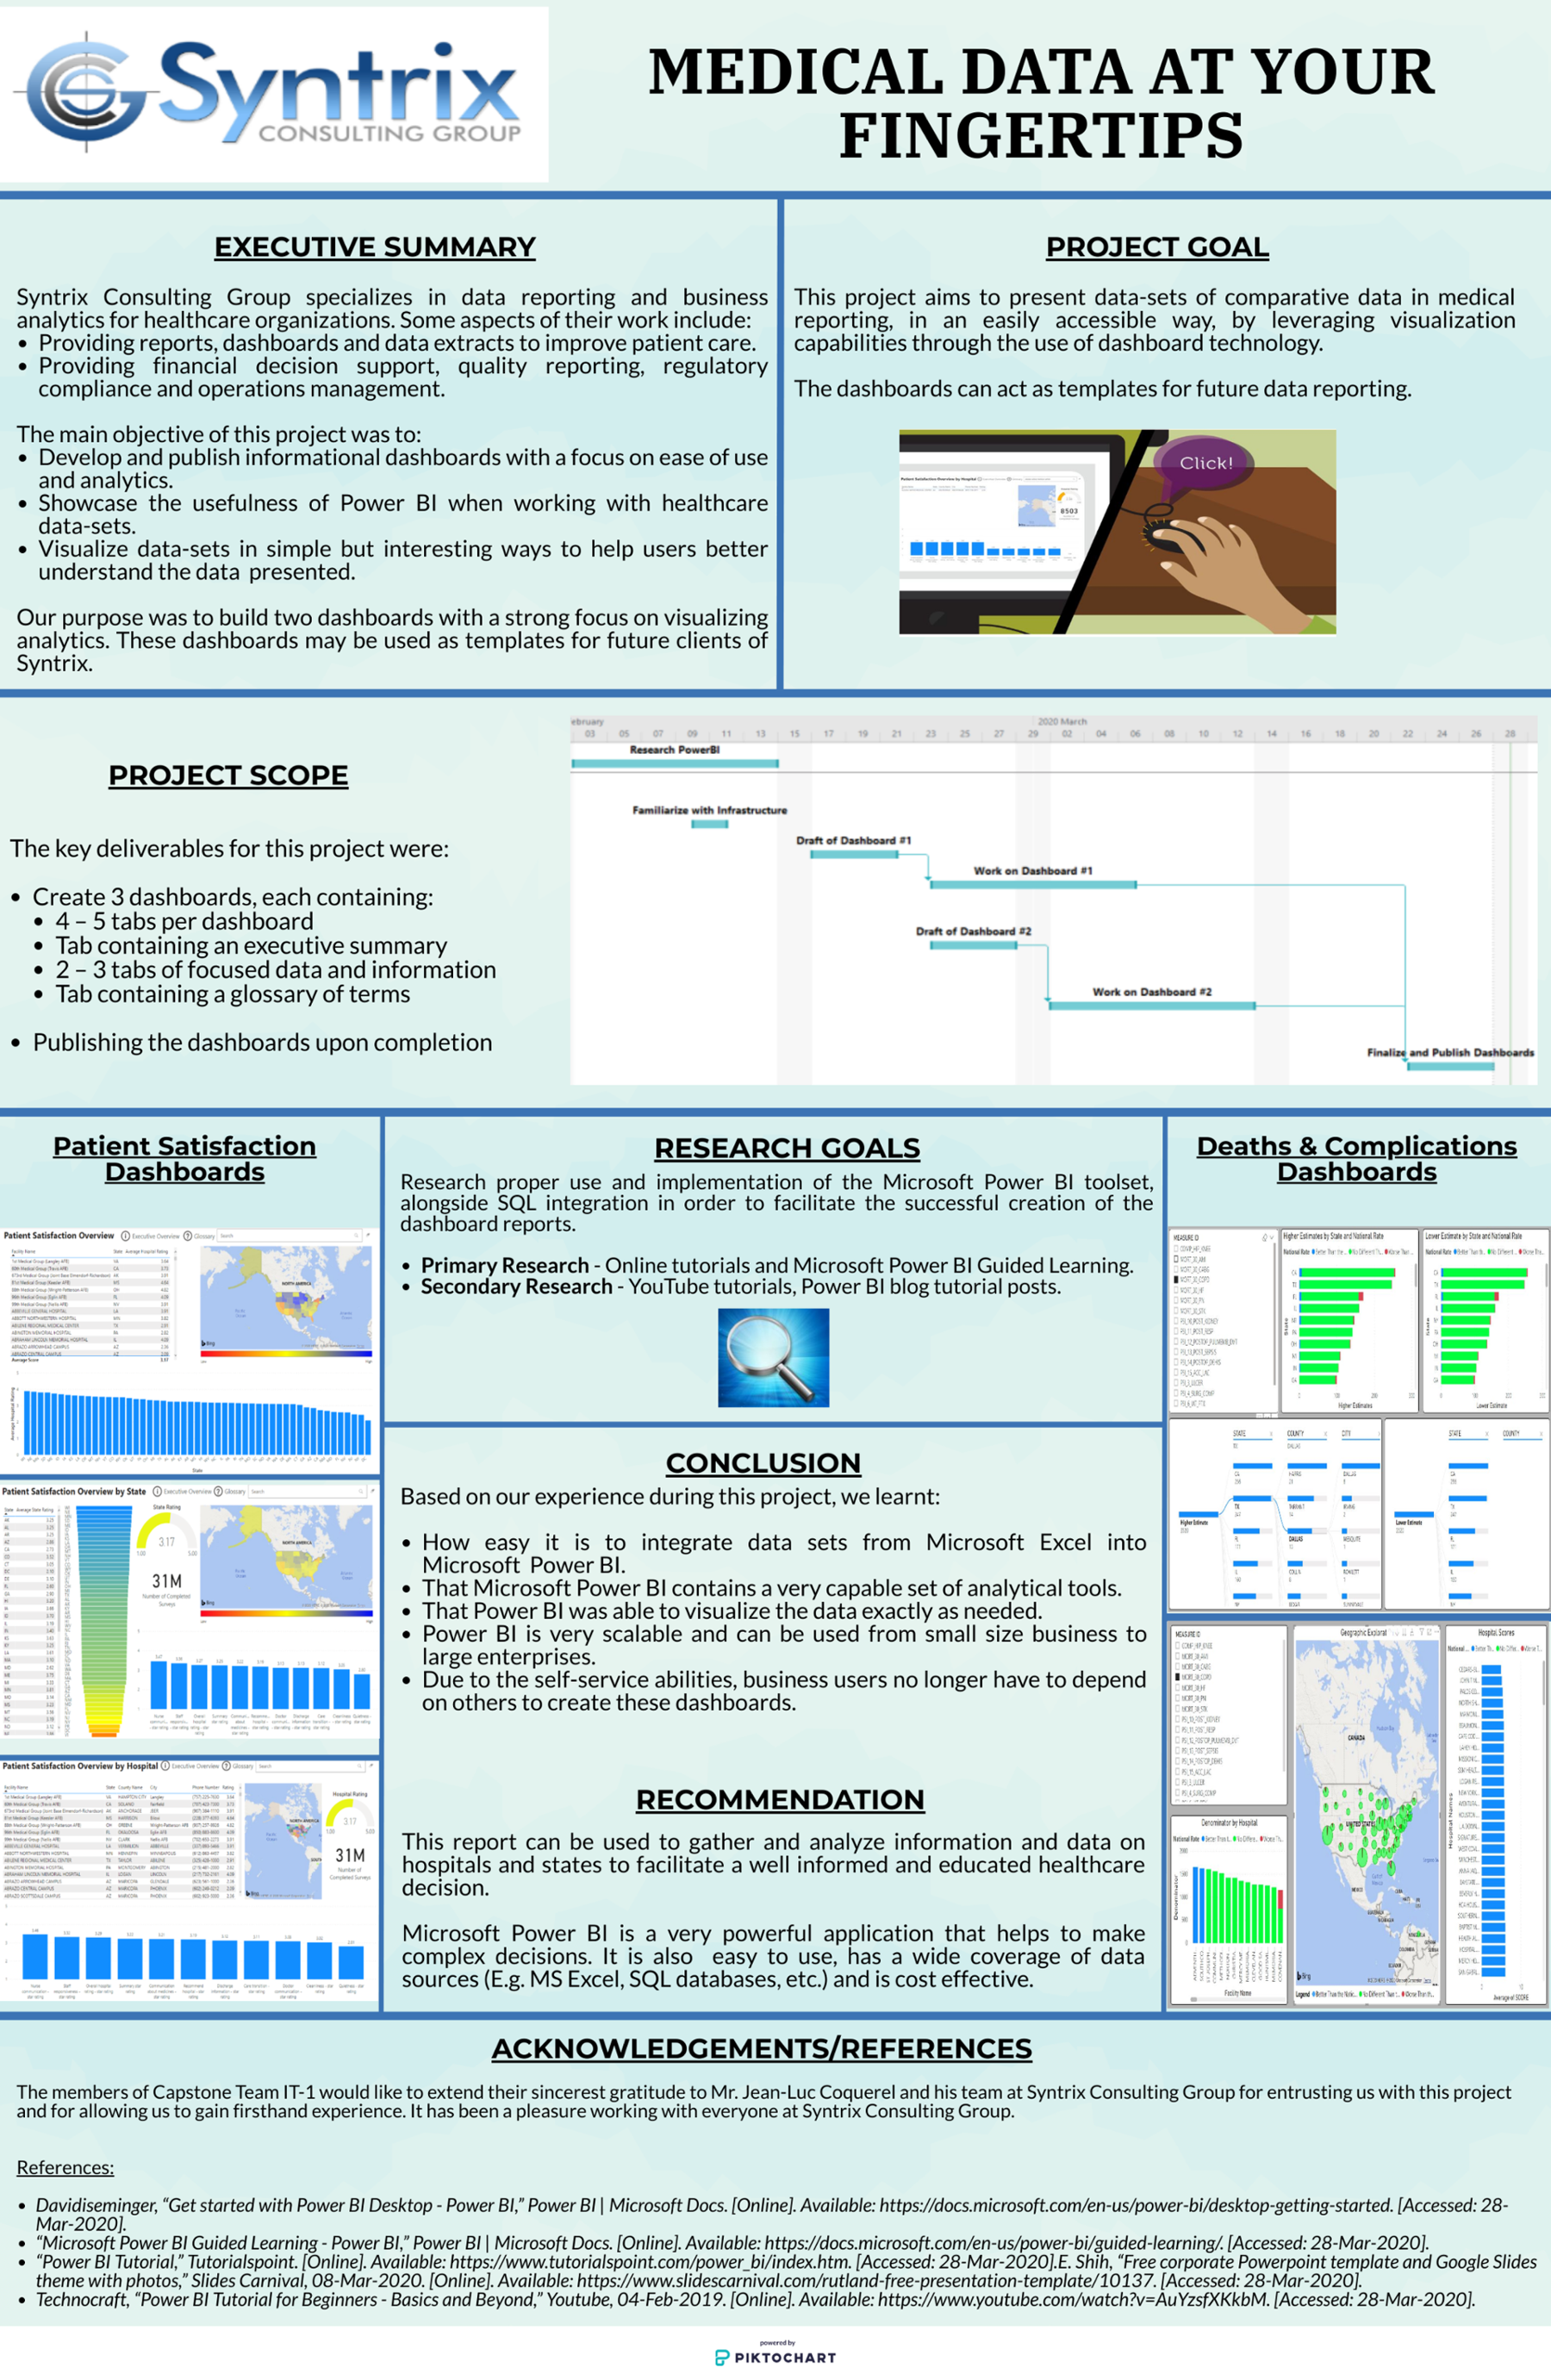 Medical Data at your Fingertips poster